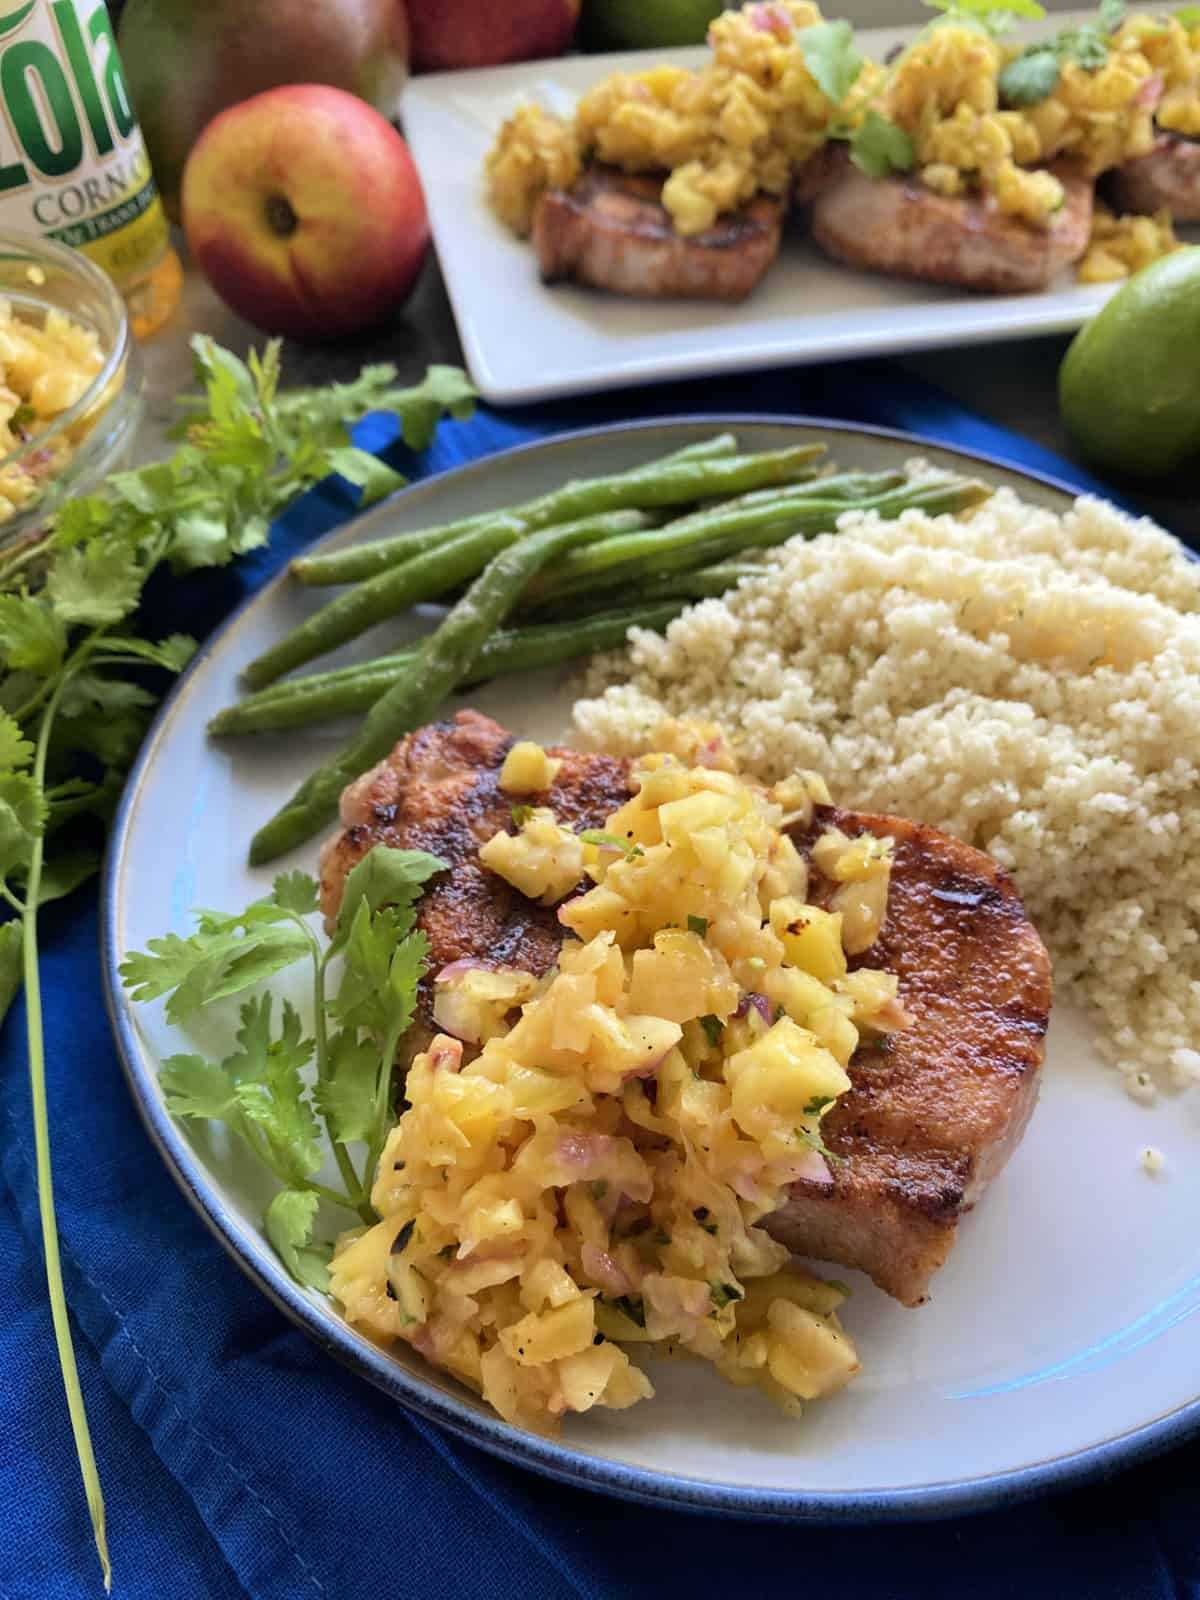 Plate of pork chop with fruit salsa, cilantro, couscous, and green beans.